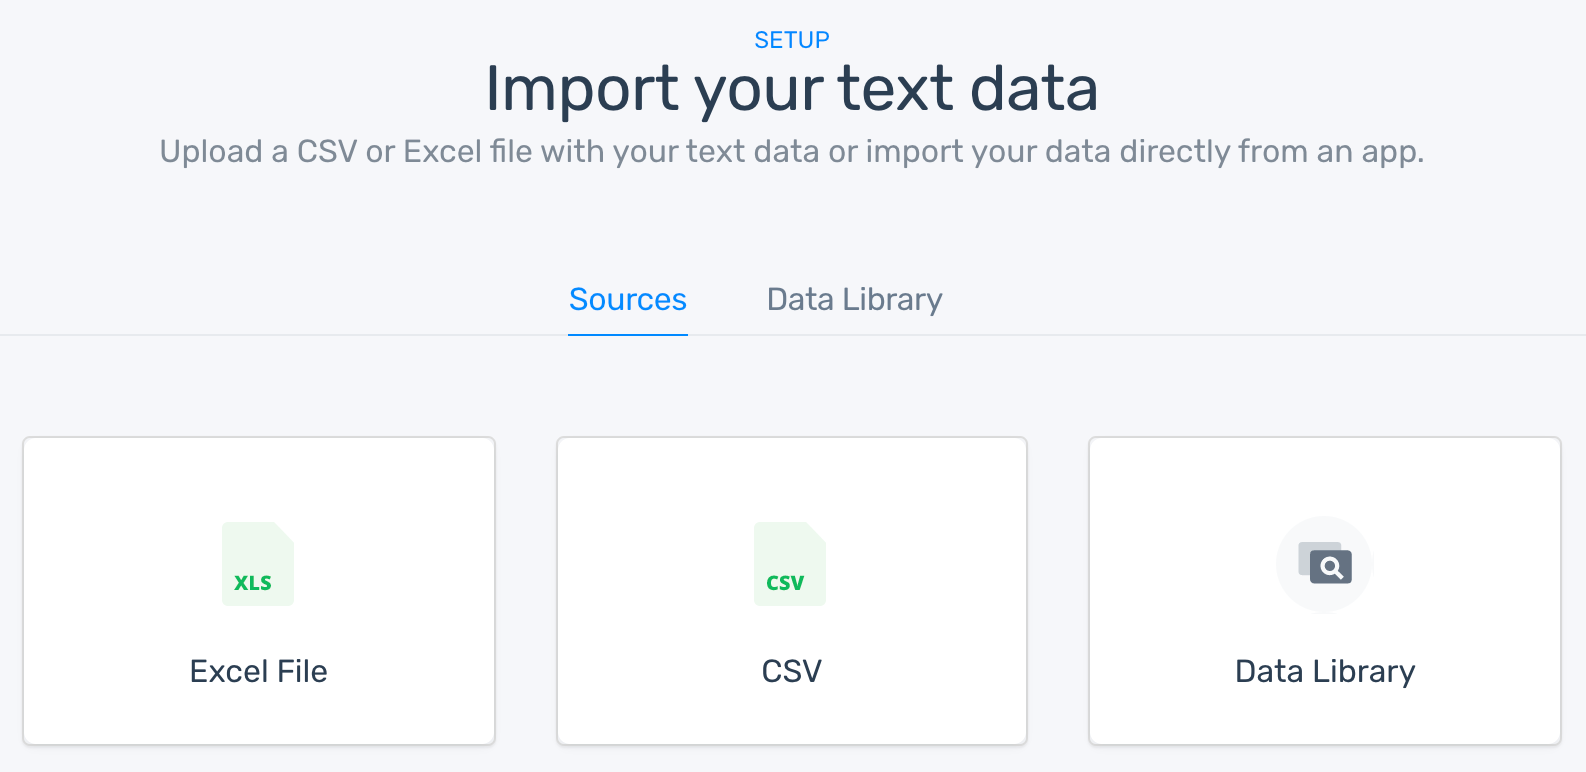 The option to upload a CSV or Excel file or download from the Data Library.